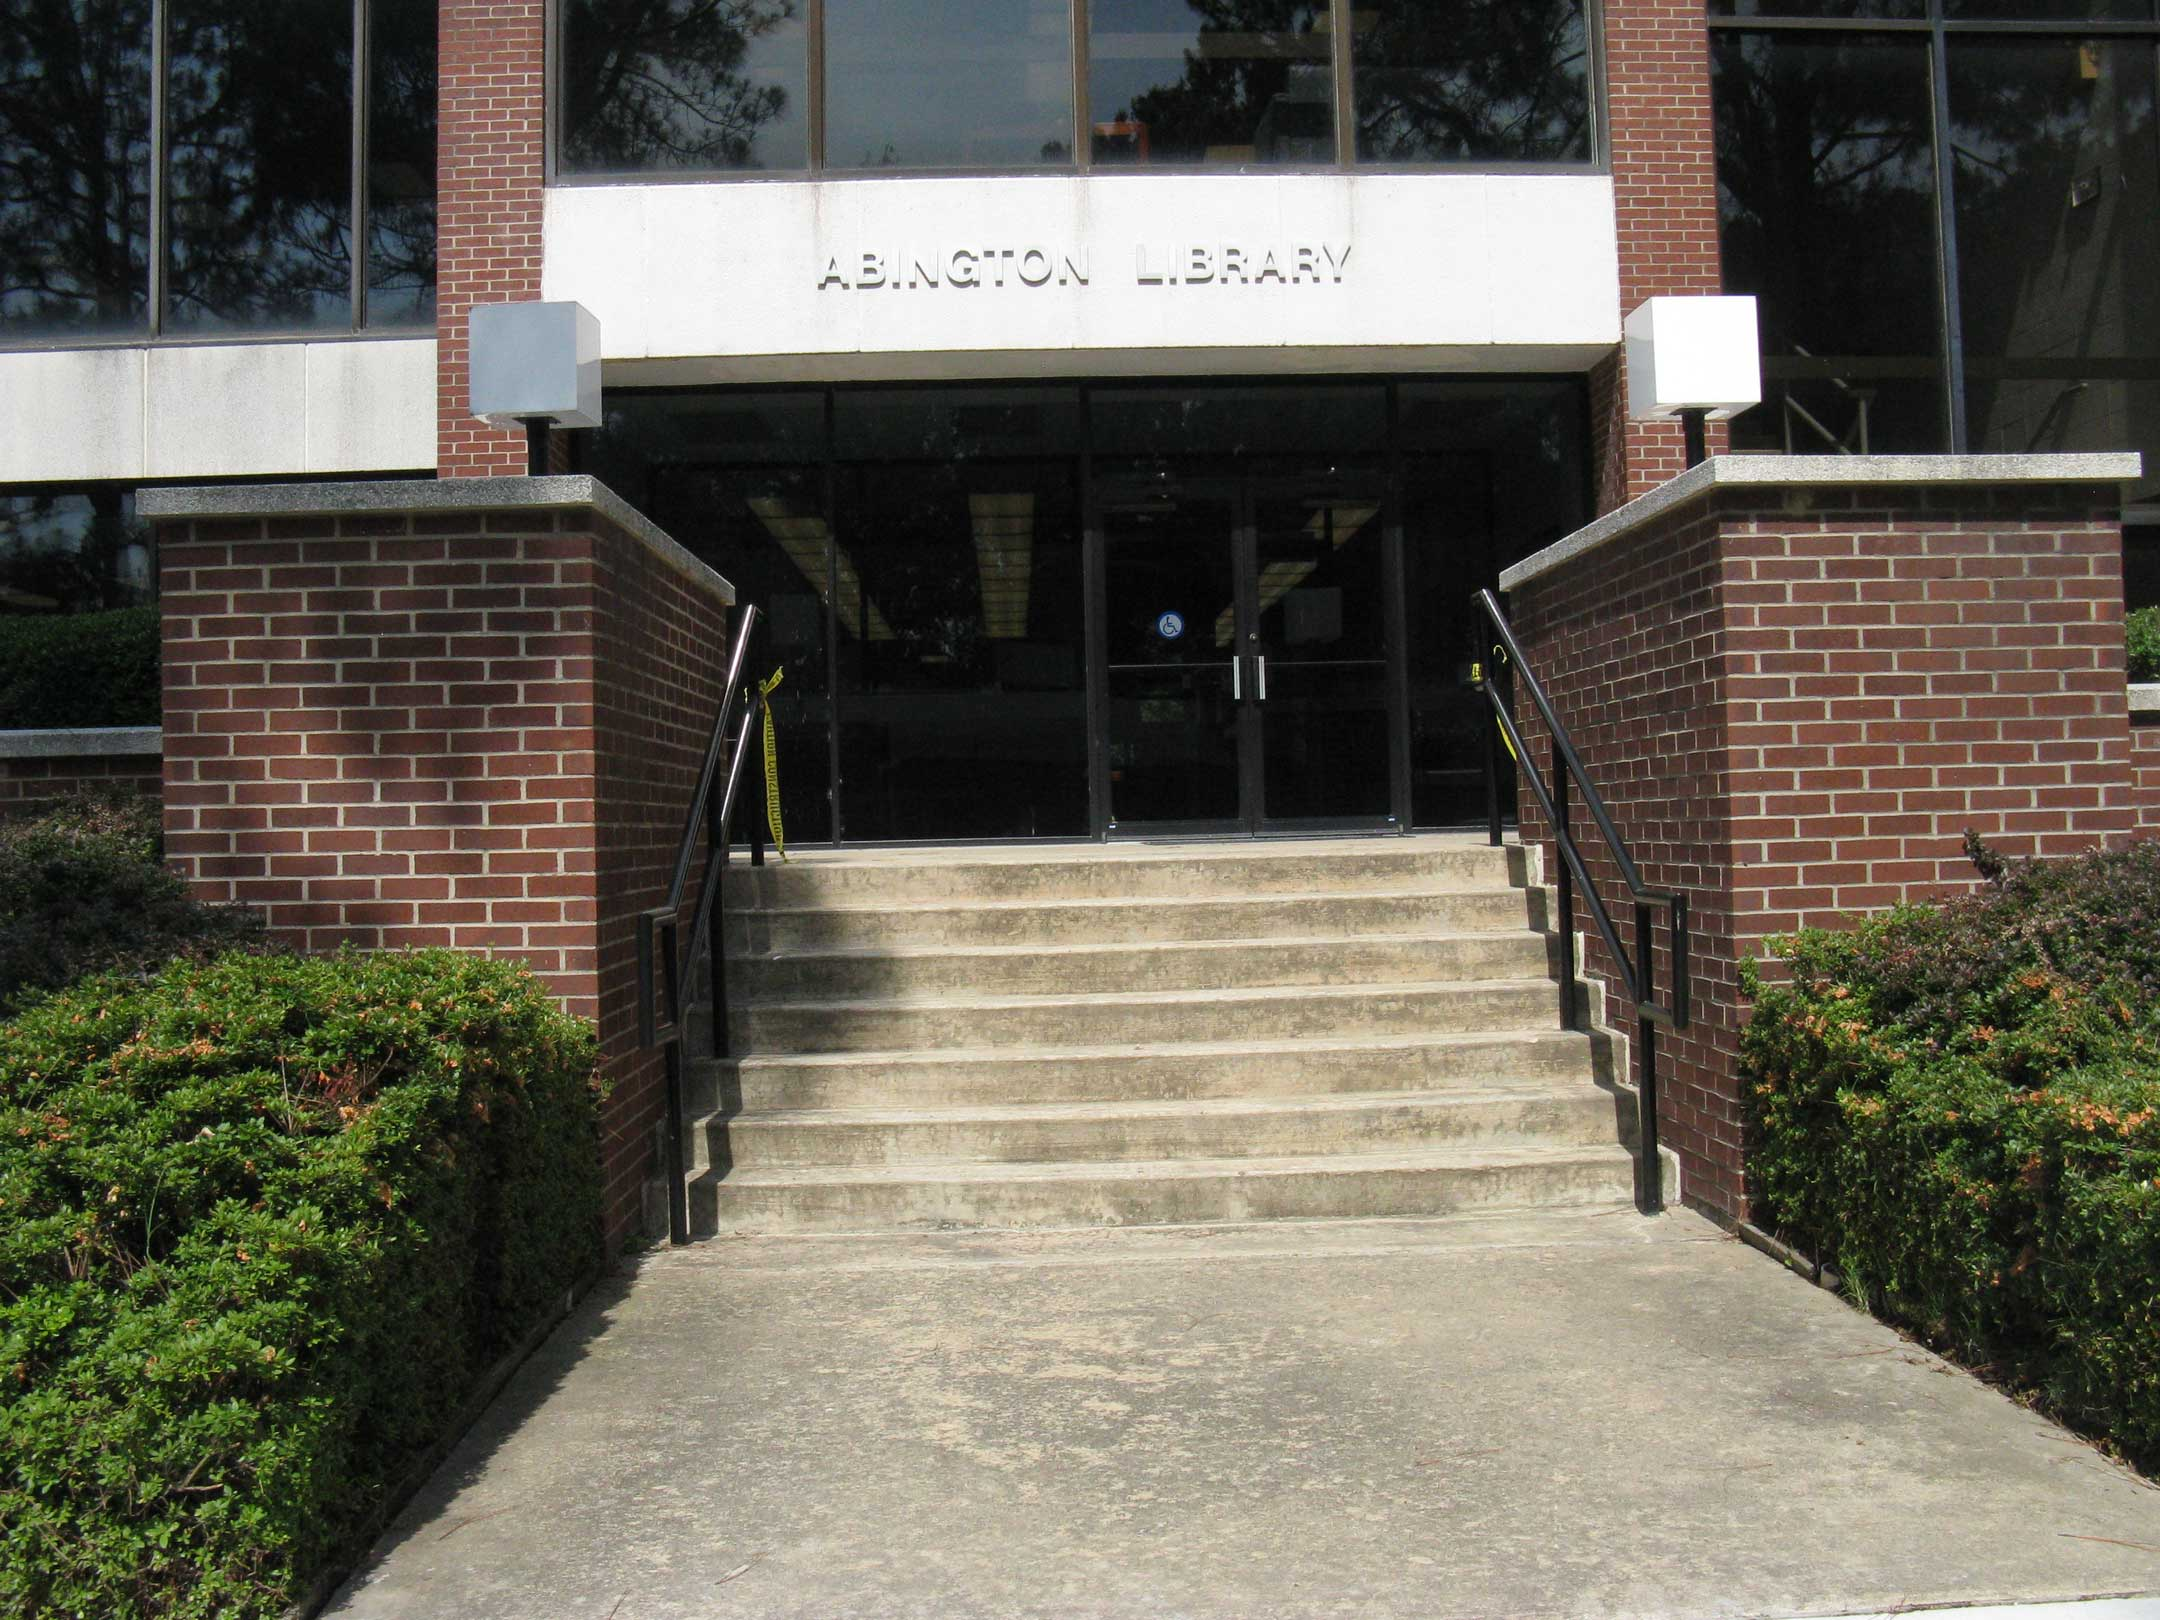 Abington Library Entrance